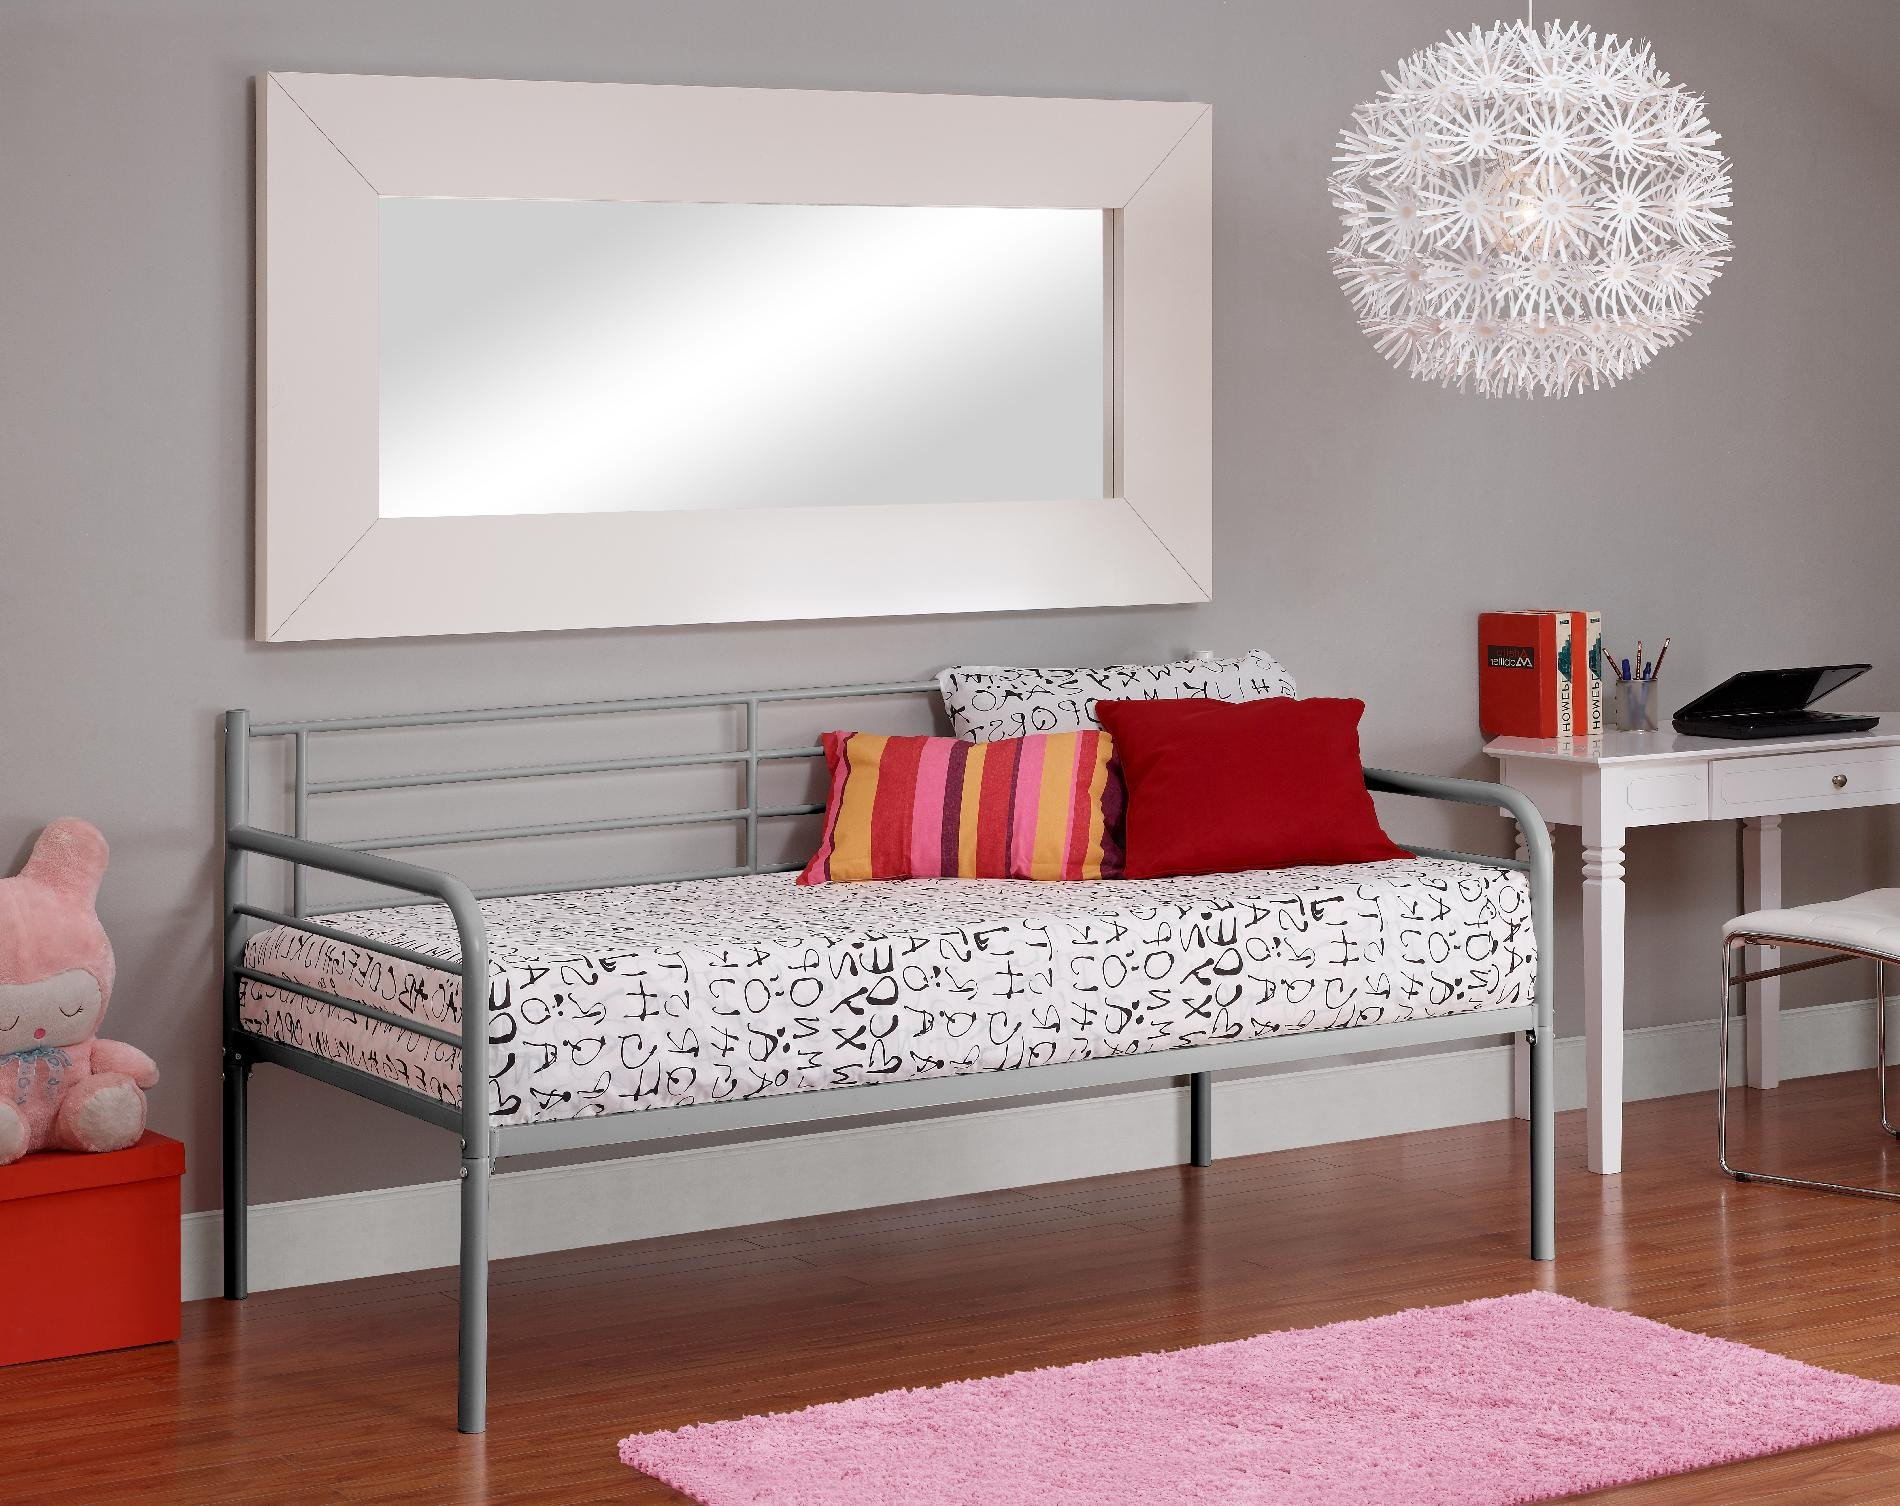 Sears Furniture Bedroom Set Inspirational Dorel Home Furnishings Silver Metal Daybed Home